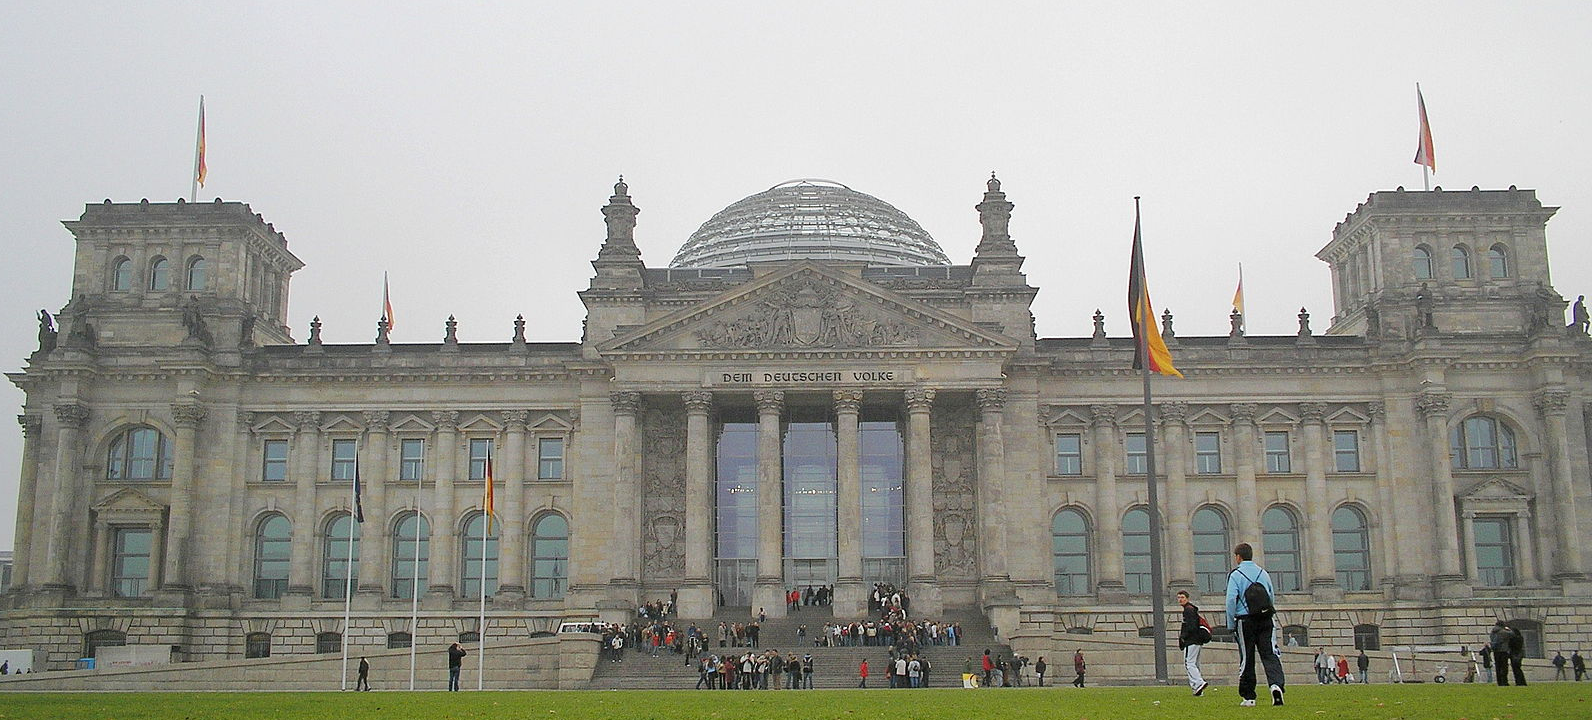 The Reichstag is a historic building that houses the  Bundestag (Federal Diet or German Parliament). Its function as Germany's legislative center since 1871 was interrupted, first by arson in 1933, which seriously damaged it, then by World War II. After the fall of the Berlin Wall and German reunification in 1990, architect Norman Foster oversaw its reconstruction. It required almost total gutting. This iconic structure grabbed headlines in 1995, when it was completely covered in plastic cloth as an art project of Christo and Jeanne-Claude. Upon completion in 1999, the building resumed its function as the home of Germany's  Bundestag . It is the most popular attraction in the country, after the gothic World Heritage Cologne Cathedral. The massive glass dome, which attracts many visitors, was added during this renovation.